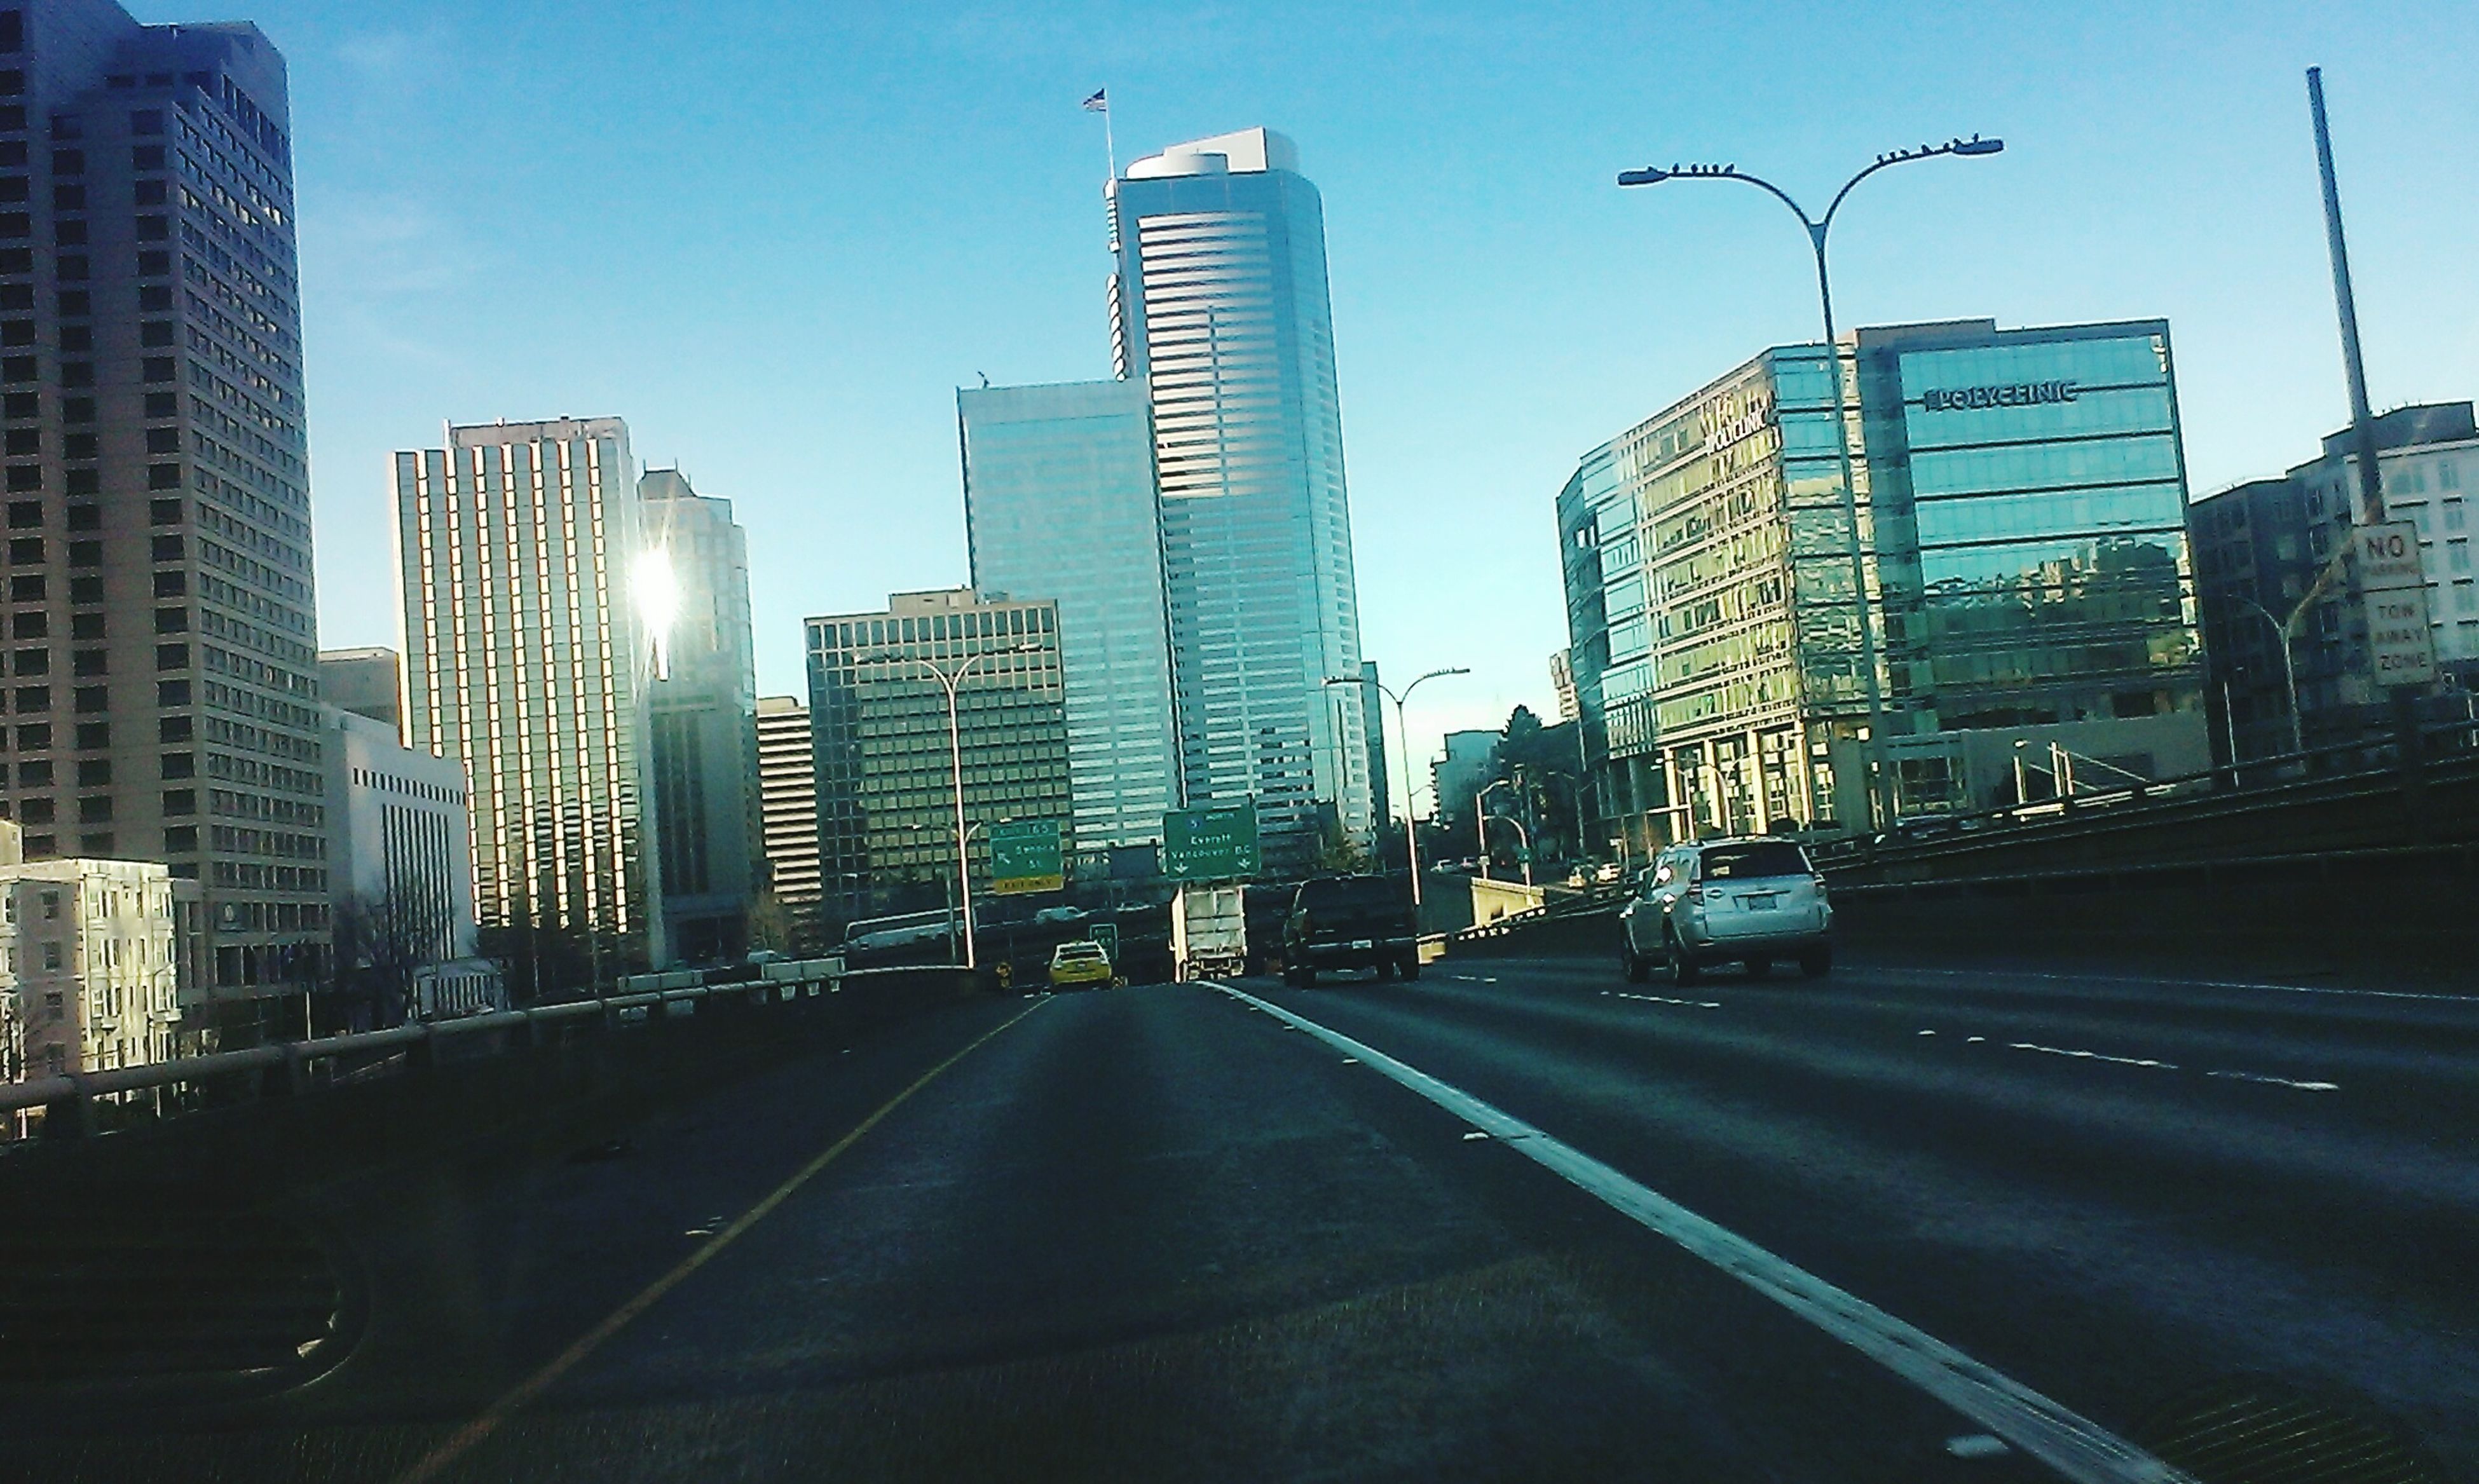 building exterior, architecture, city, built structure, skyscraper, transportation, office building, tall - high, modern, tower, the way forward, road, street, car, building, cityscape, clear sky, city life, financial district, urban skyline